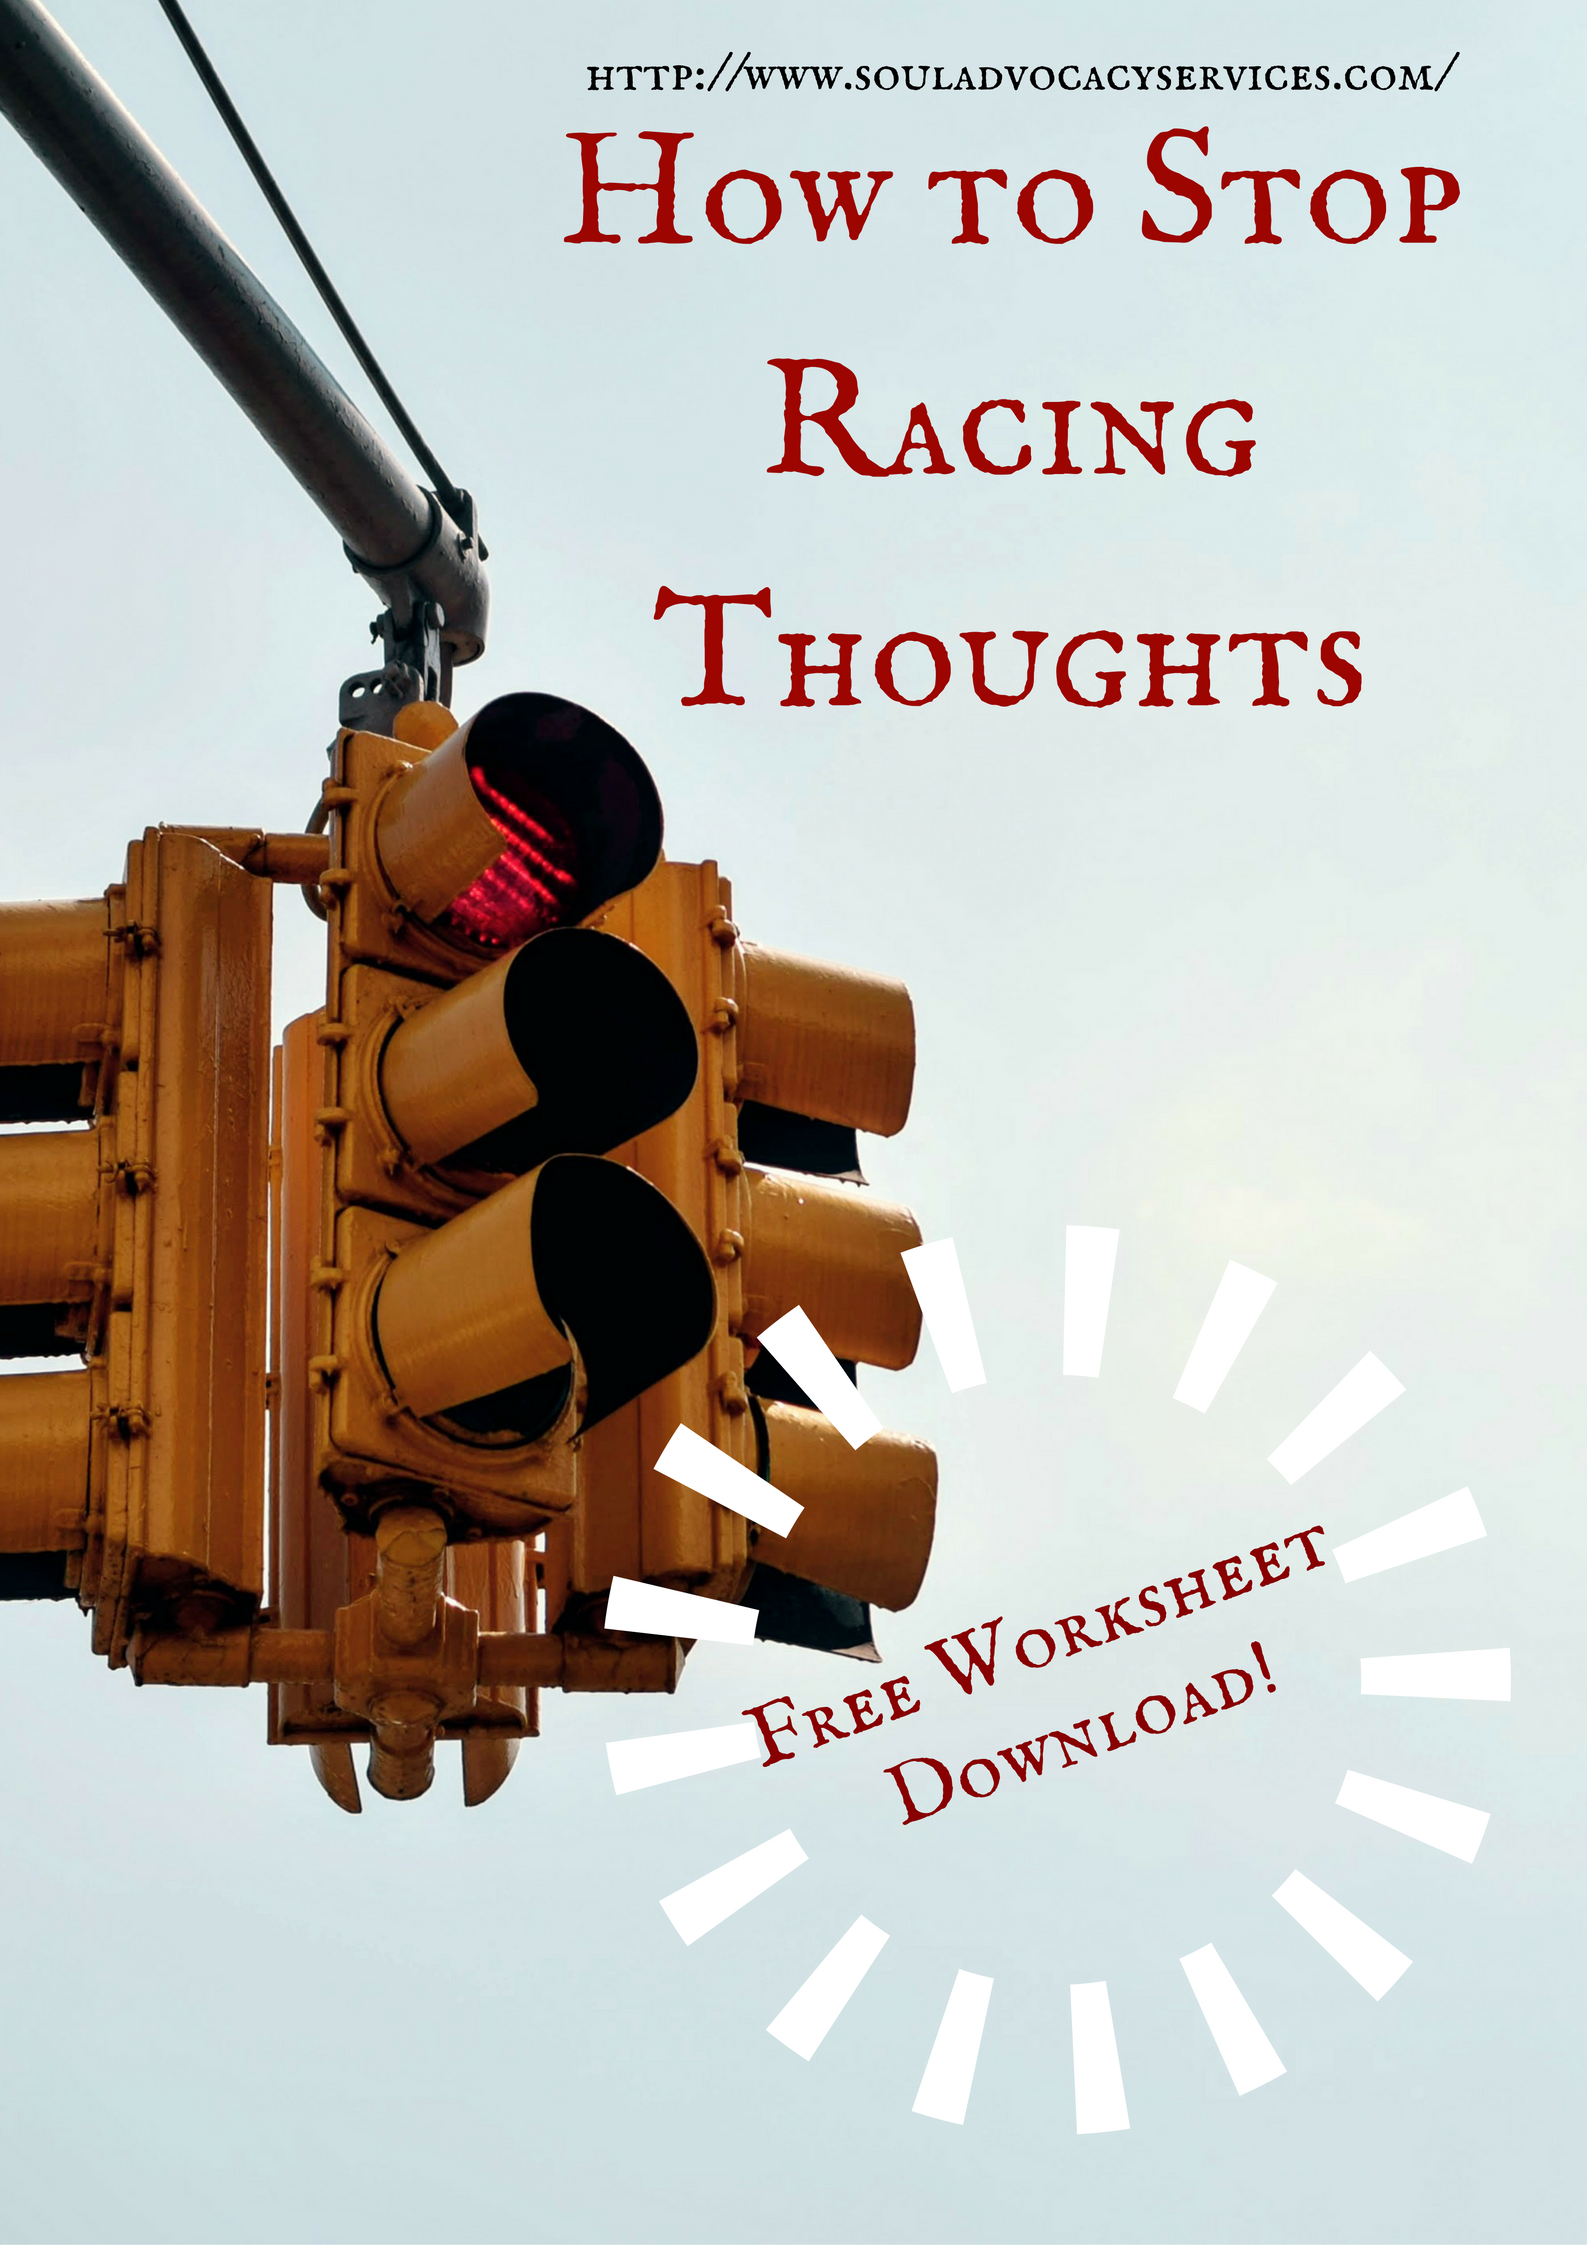 How To Stop Racing Thoughts